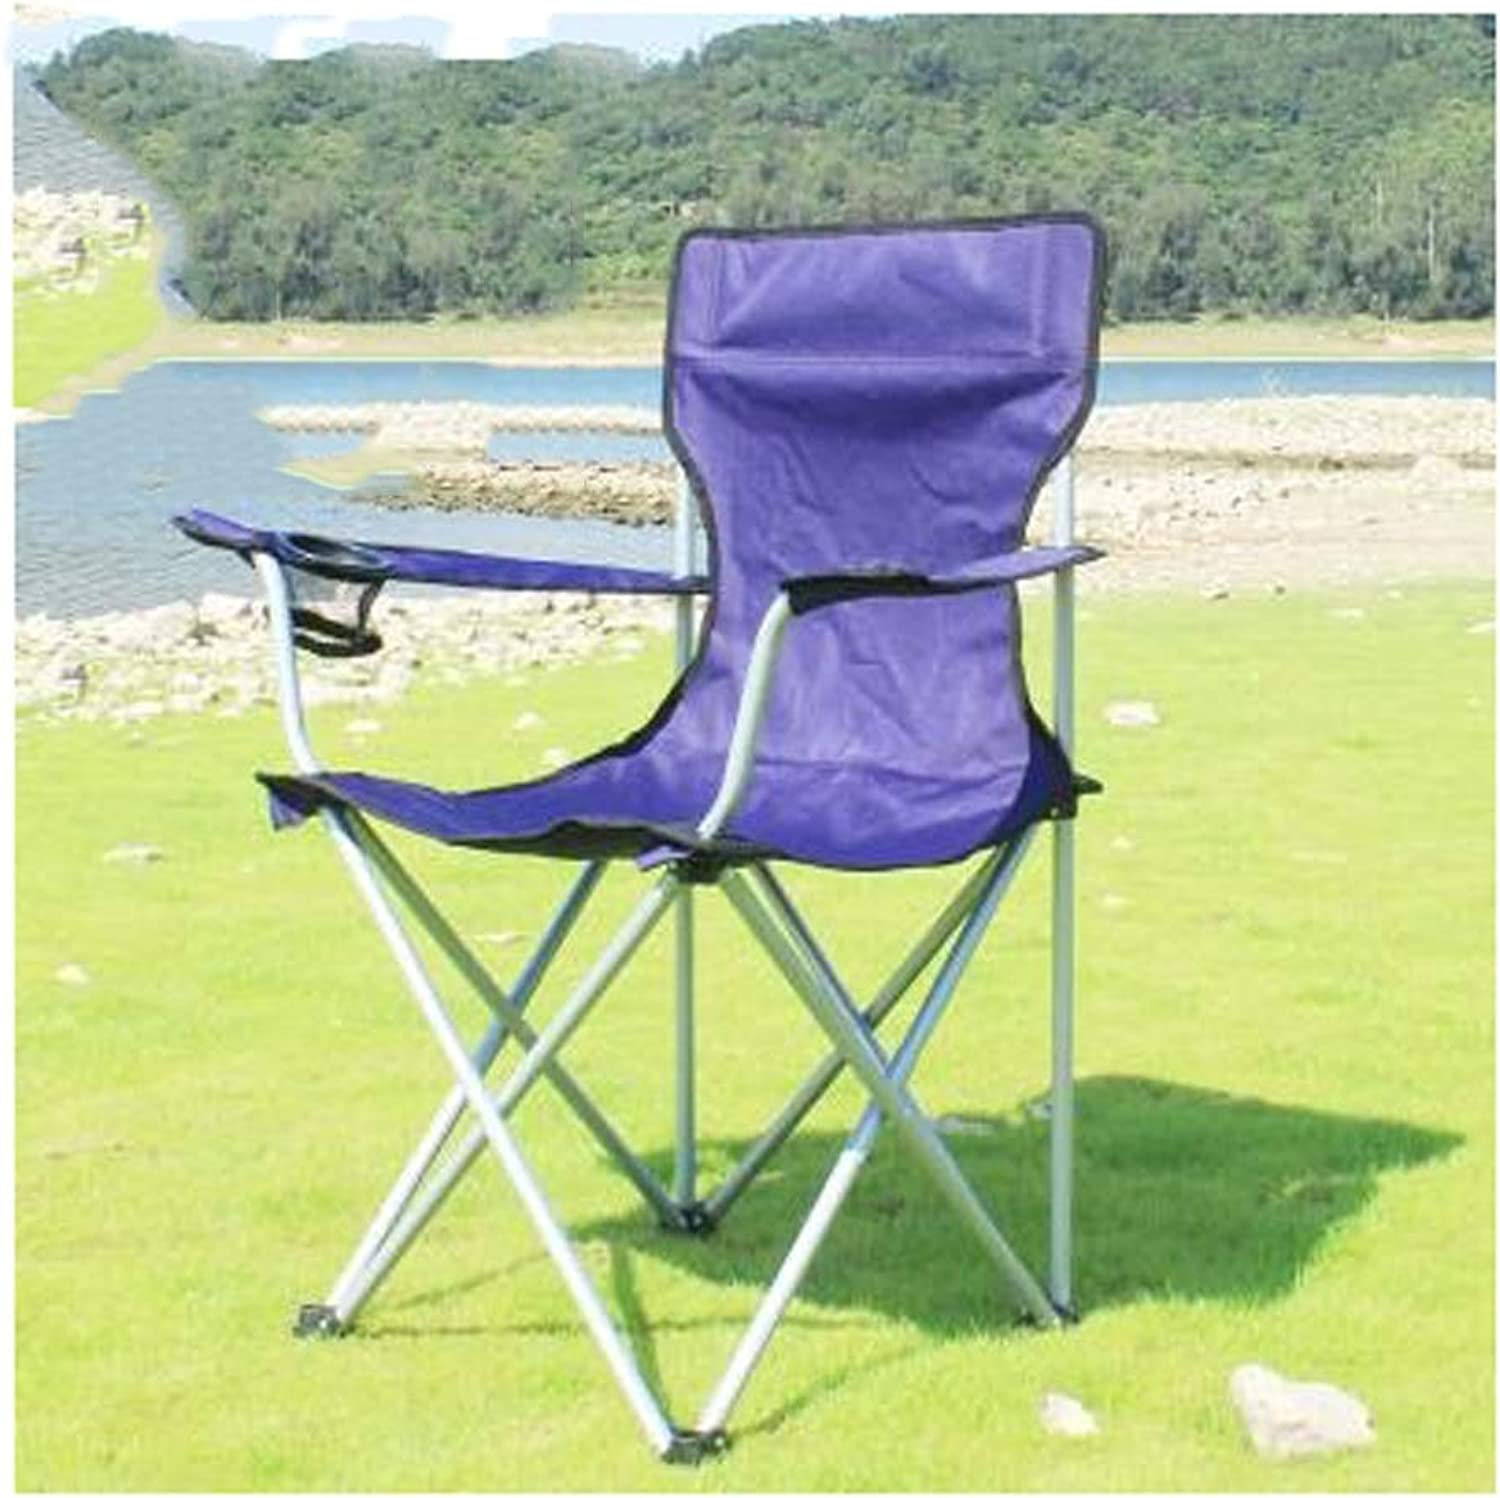 Camping Folding Chair, Purple Outdoor Travel Portable Lightweight Festival Fishing Seat Picnic Beach Hiker Stool